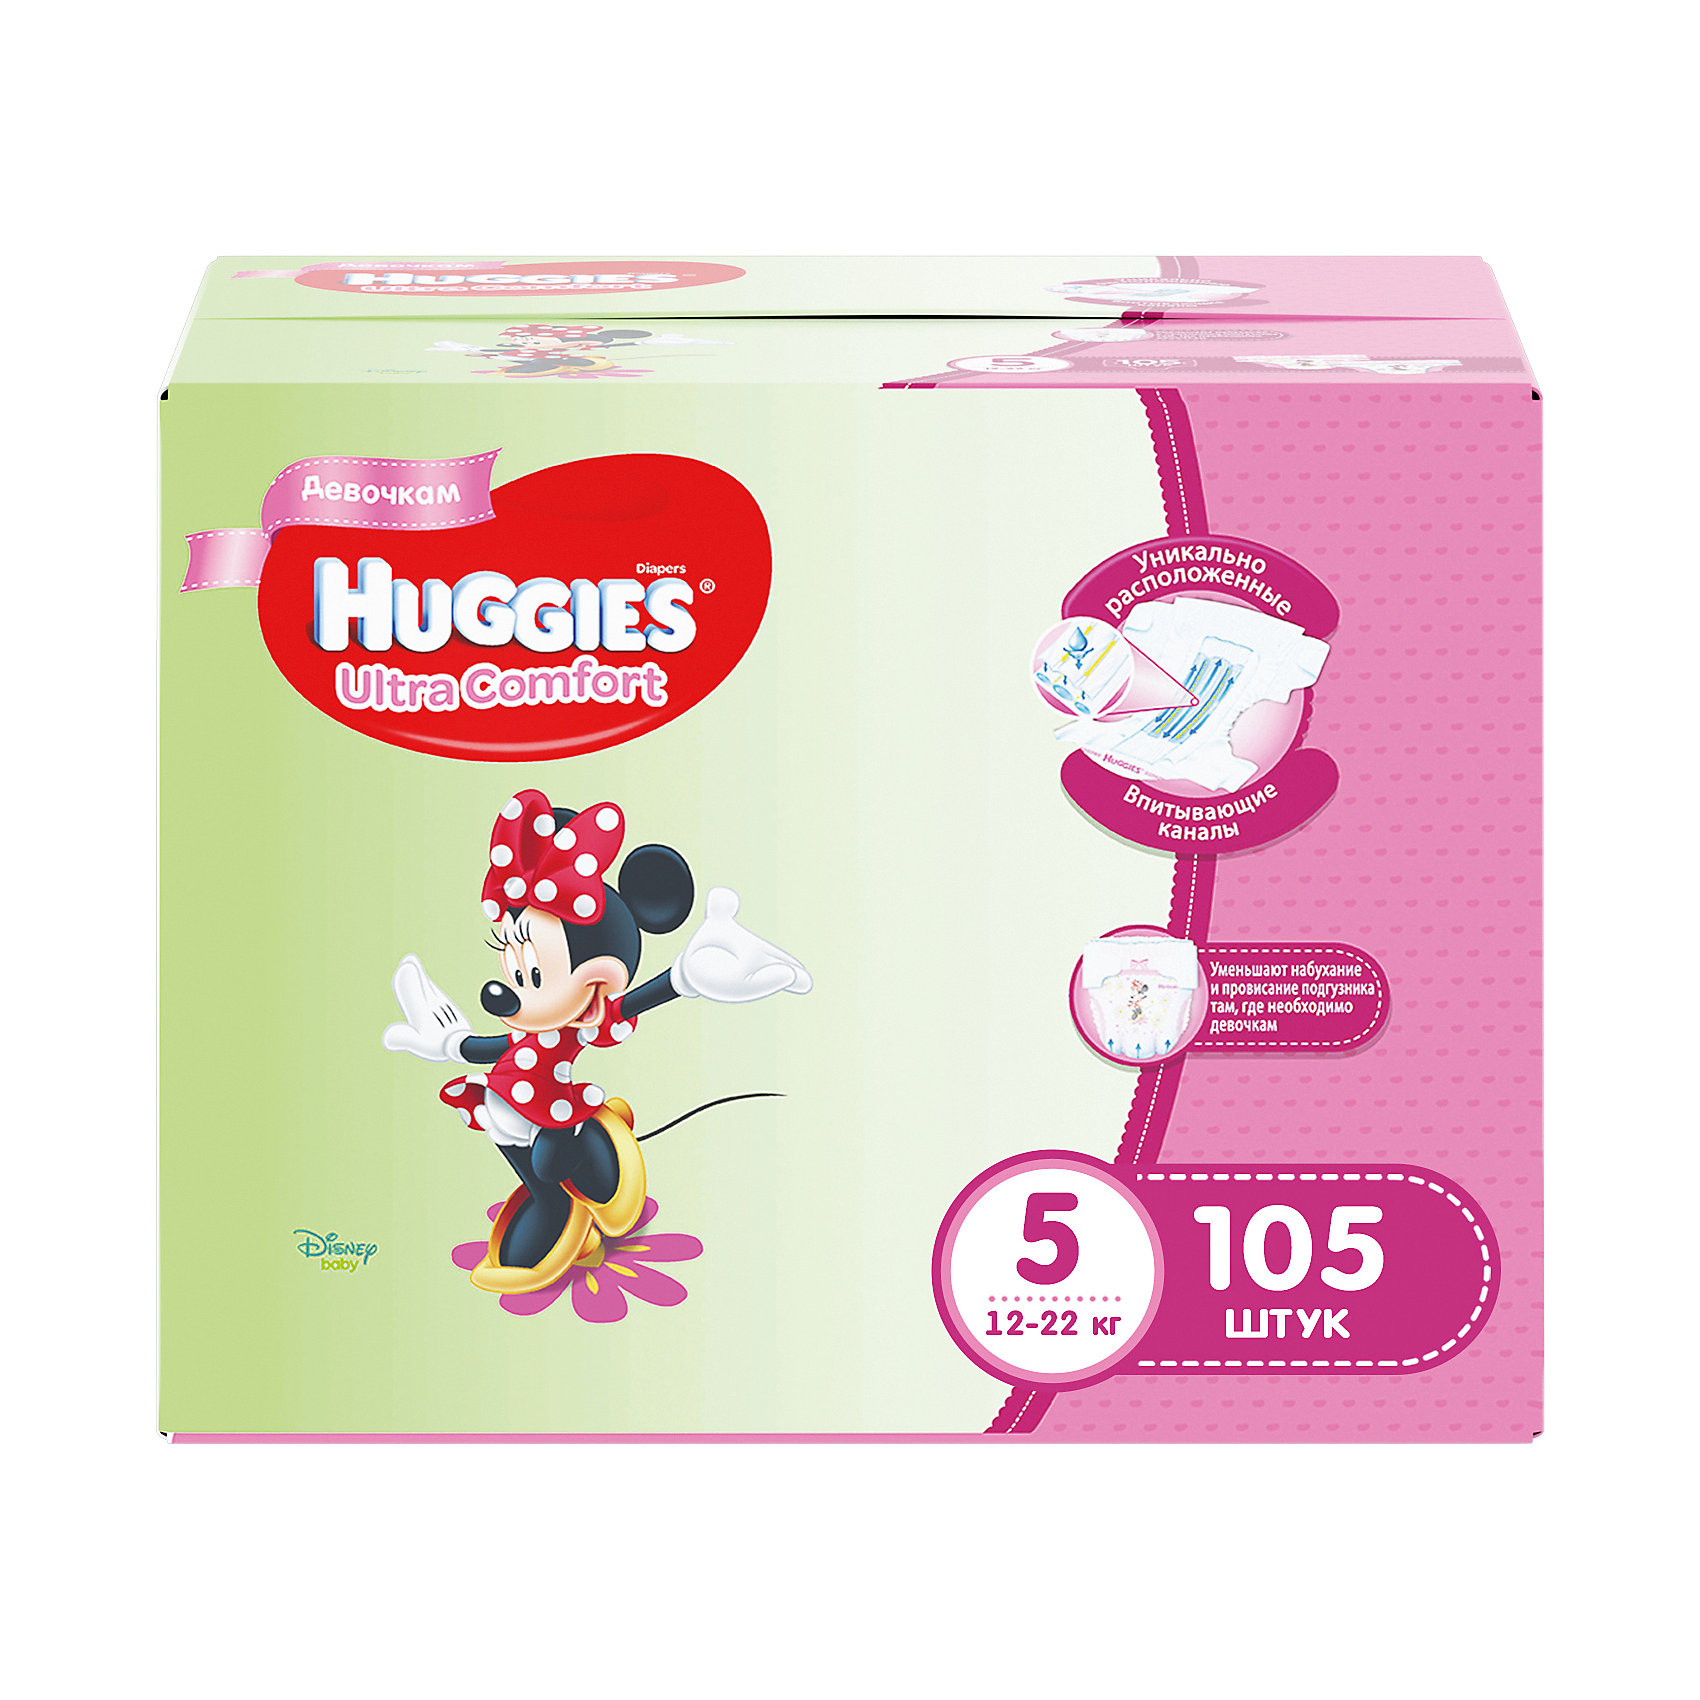 ���������� Huggies Ultra Comfort ��� ������� Disney Box (5) 12-22 ��, 105 ��. (35�3) (HUGGIES)